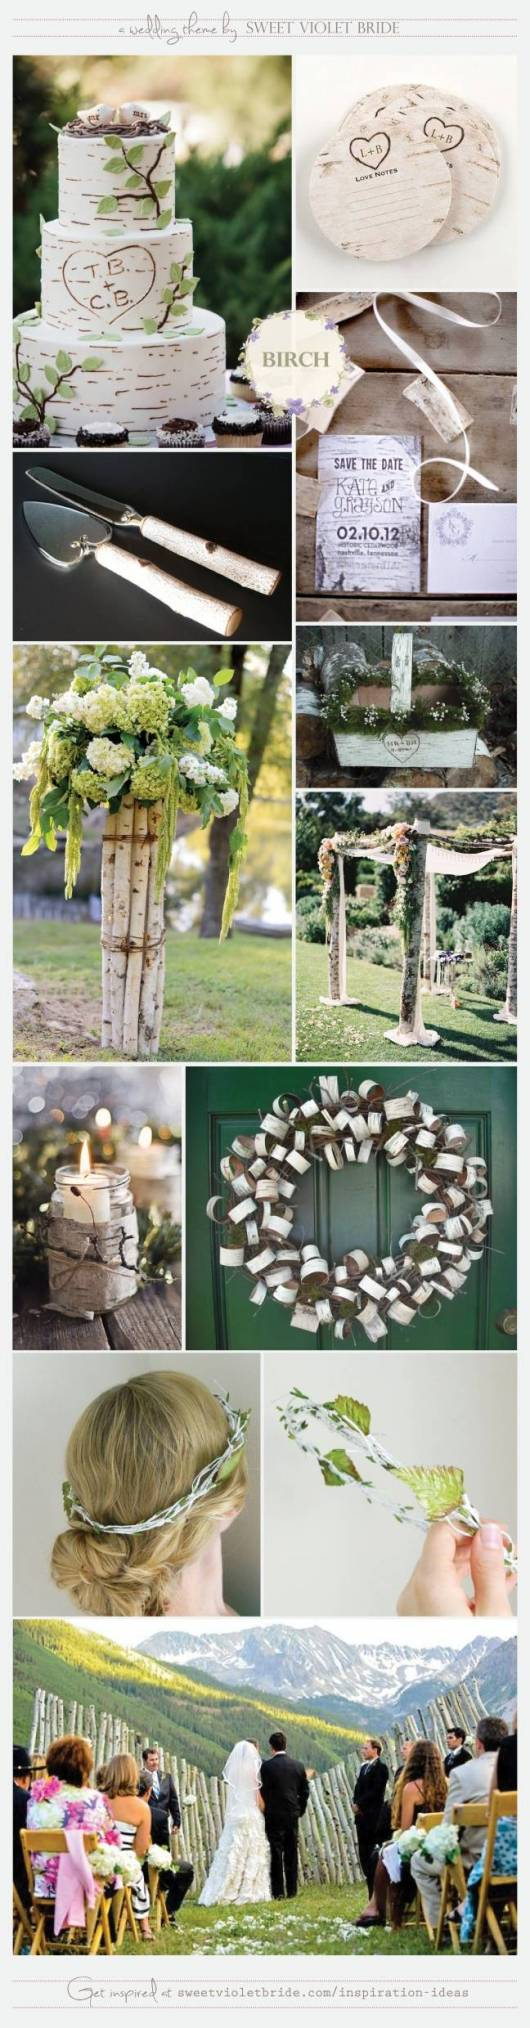 Wedding Inspiration Board #16: Birch